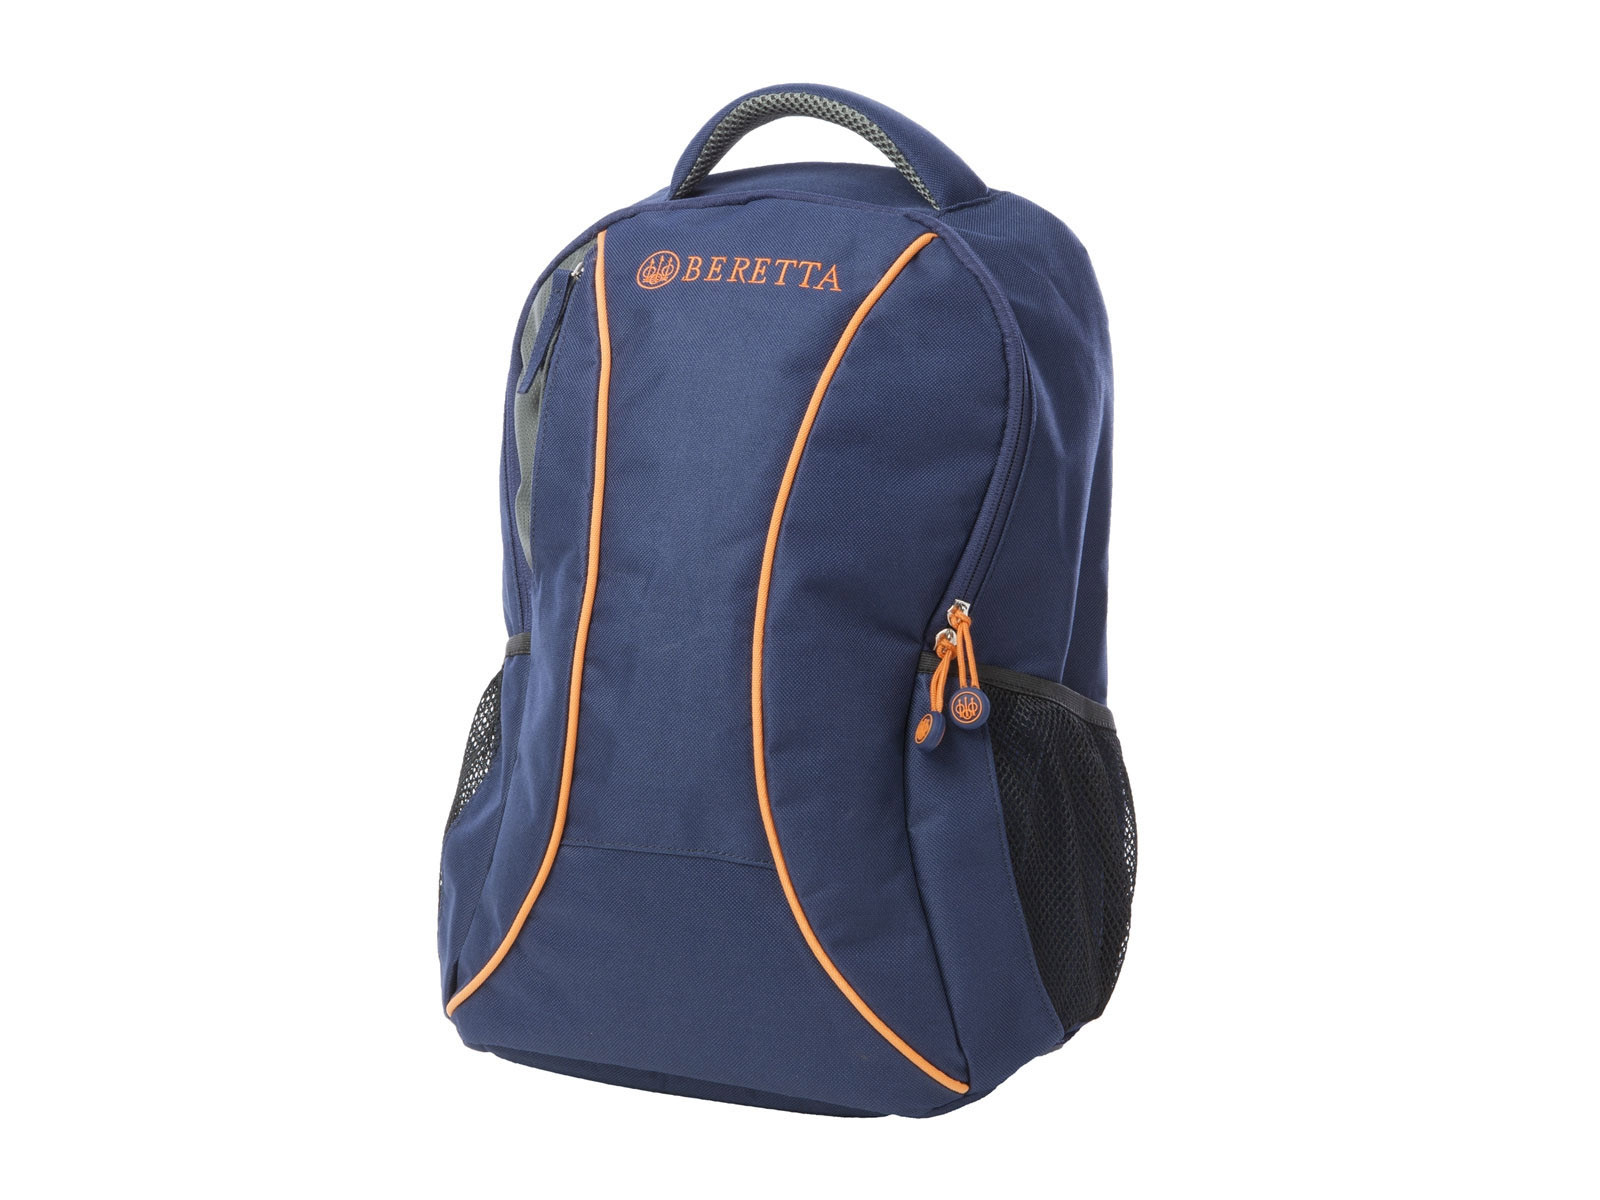 Beretta Uniform Pro Backpack